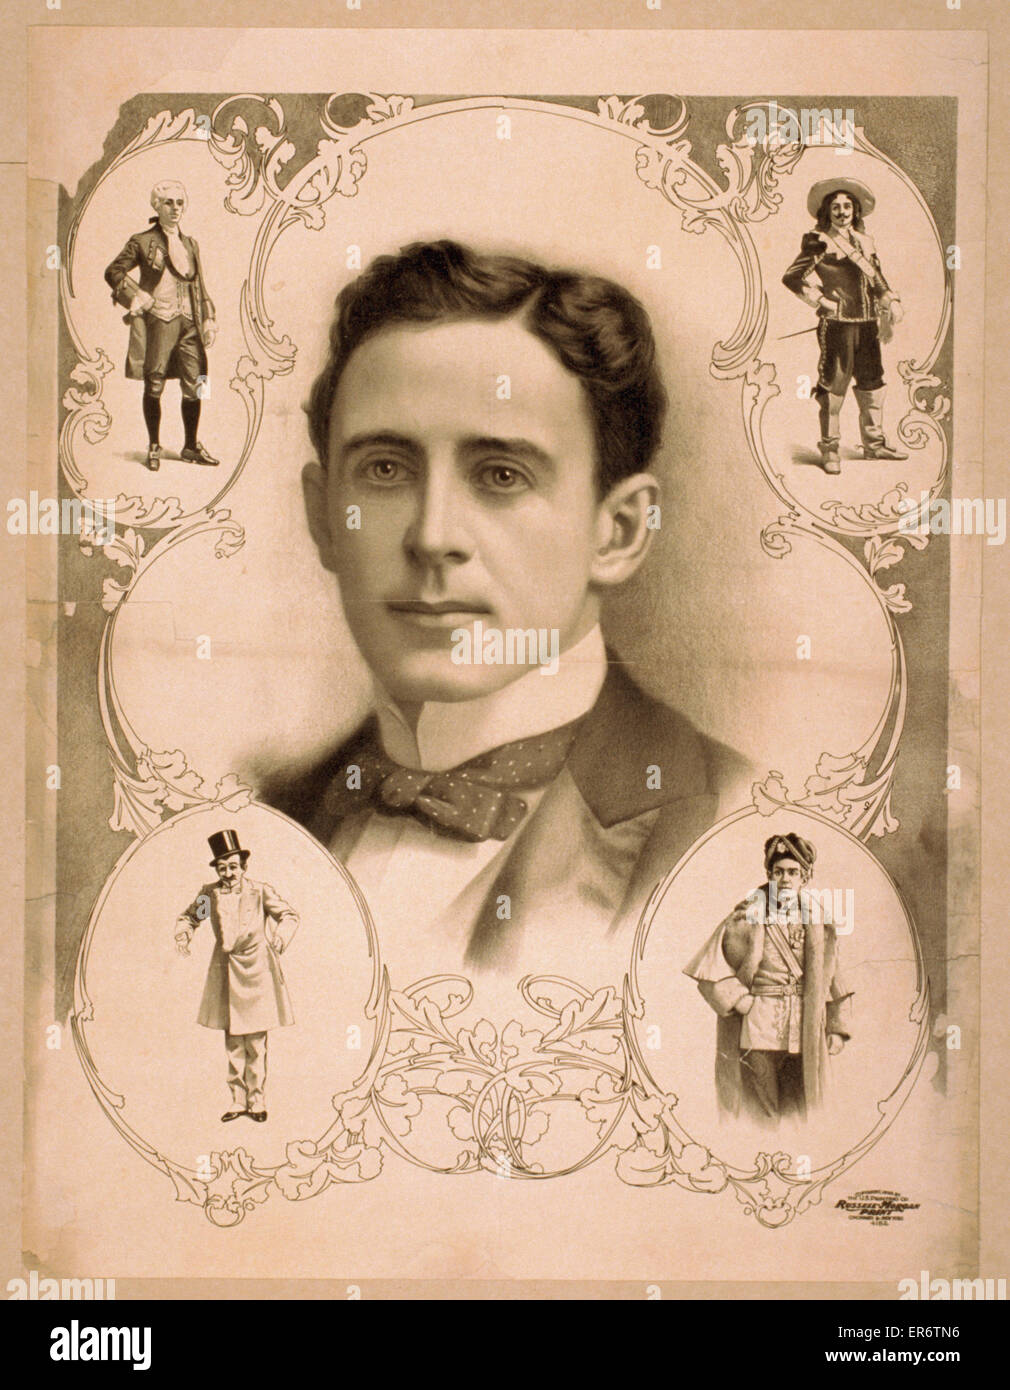 Bust image of man in bowtie surrounded by four images of same man in costume. Date c1899. - Stock Image